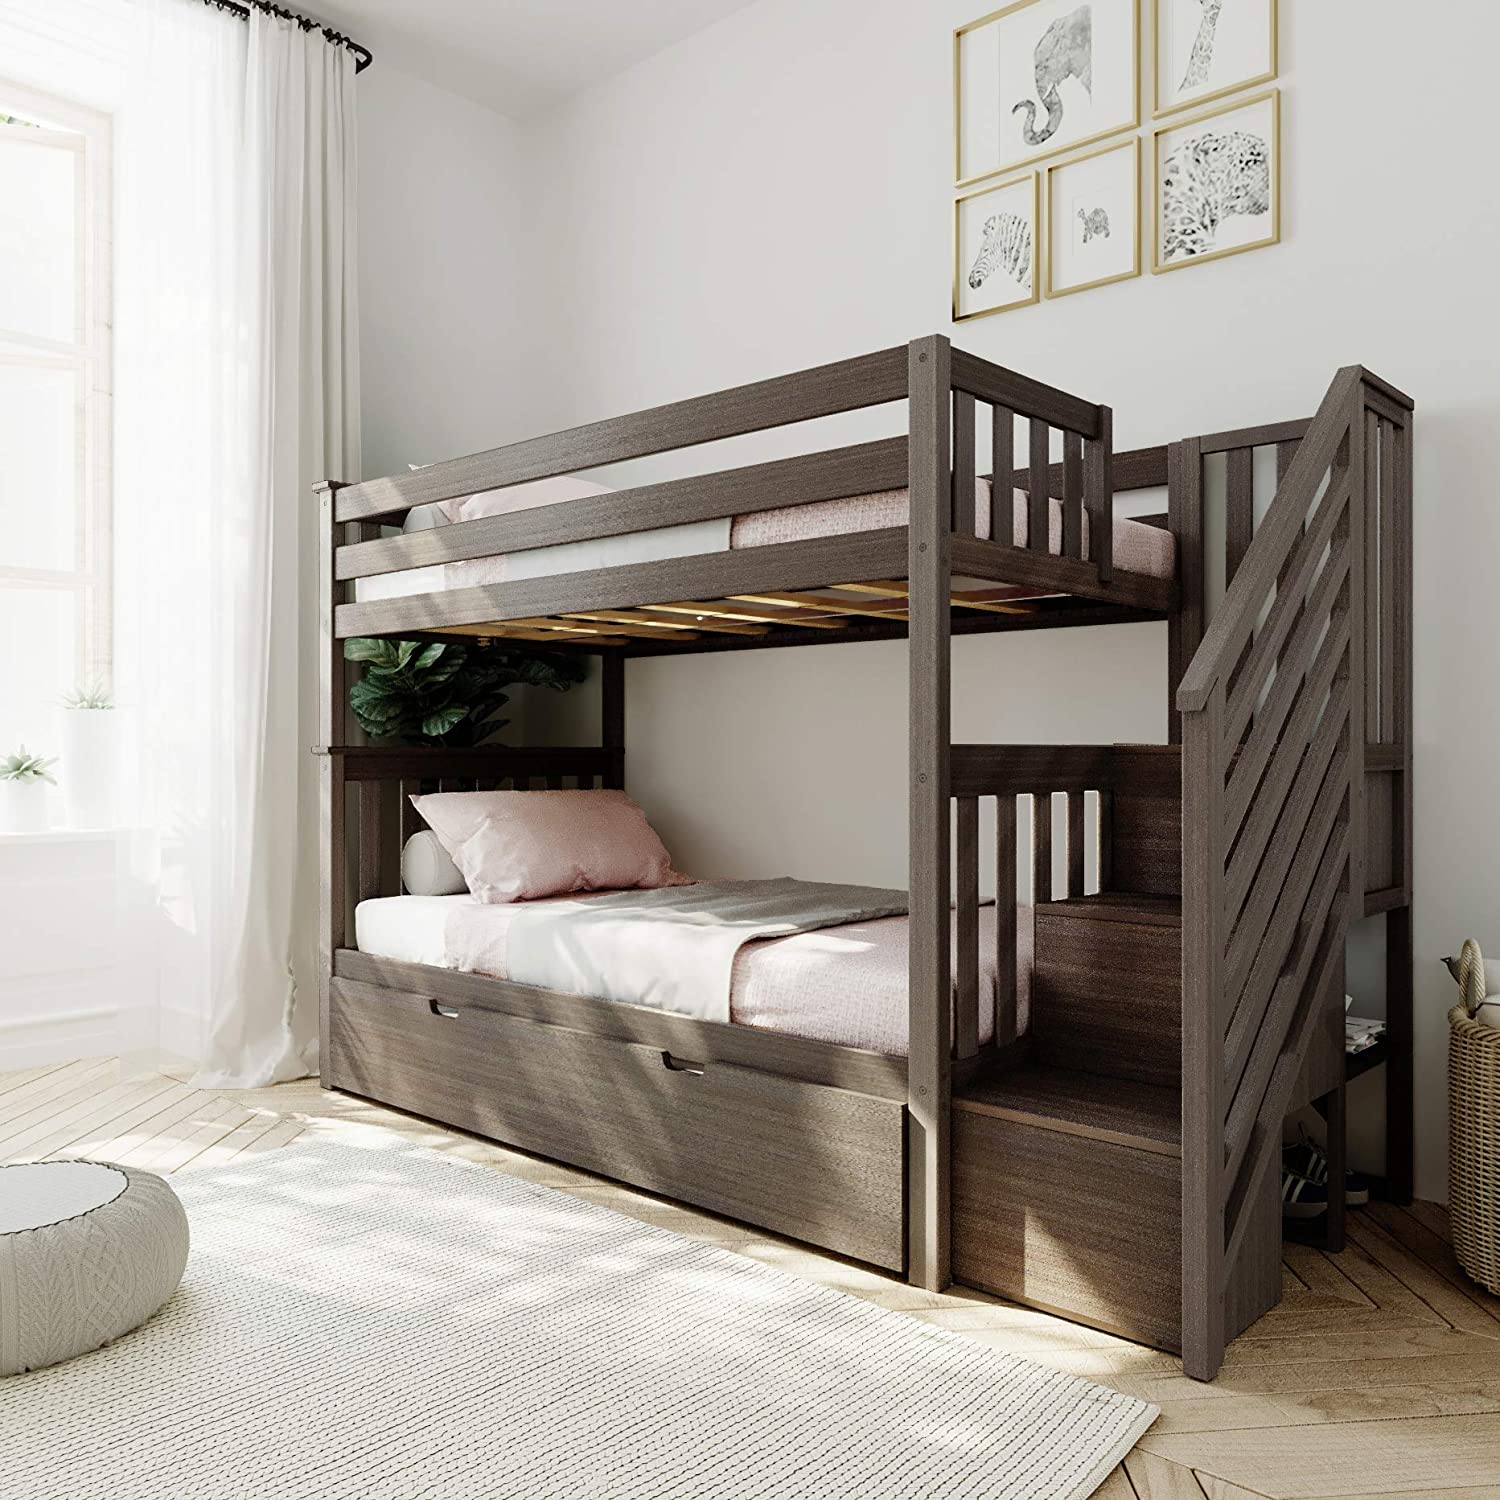 Amazon Com Max Lily Bunk Bed With Stairs And Trundle Twin Clay Furniture Decor